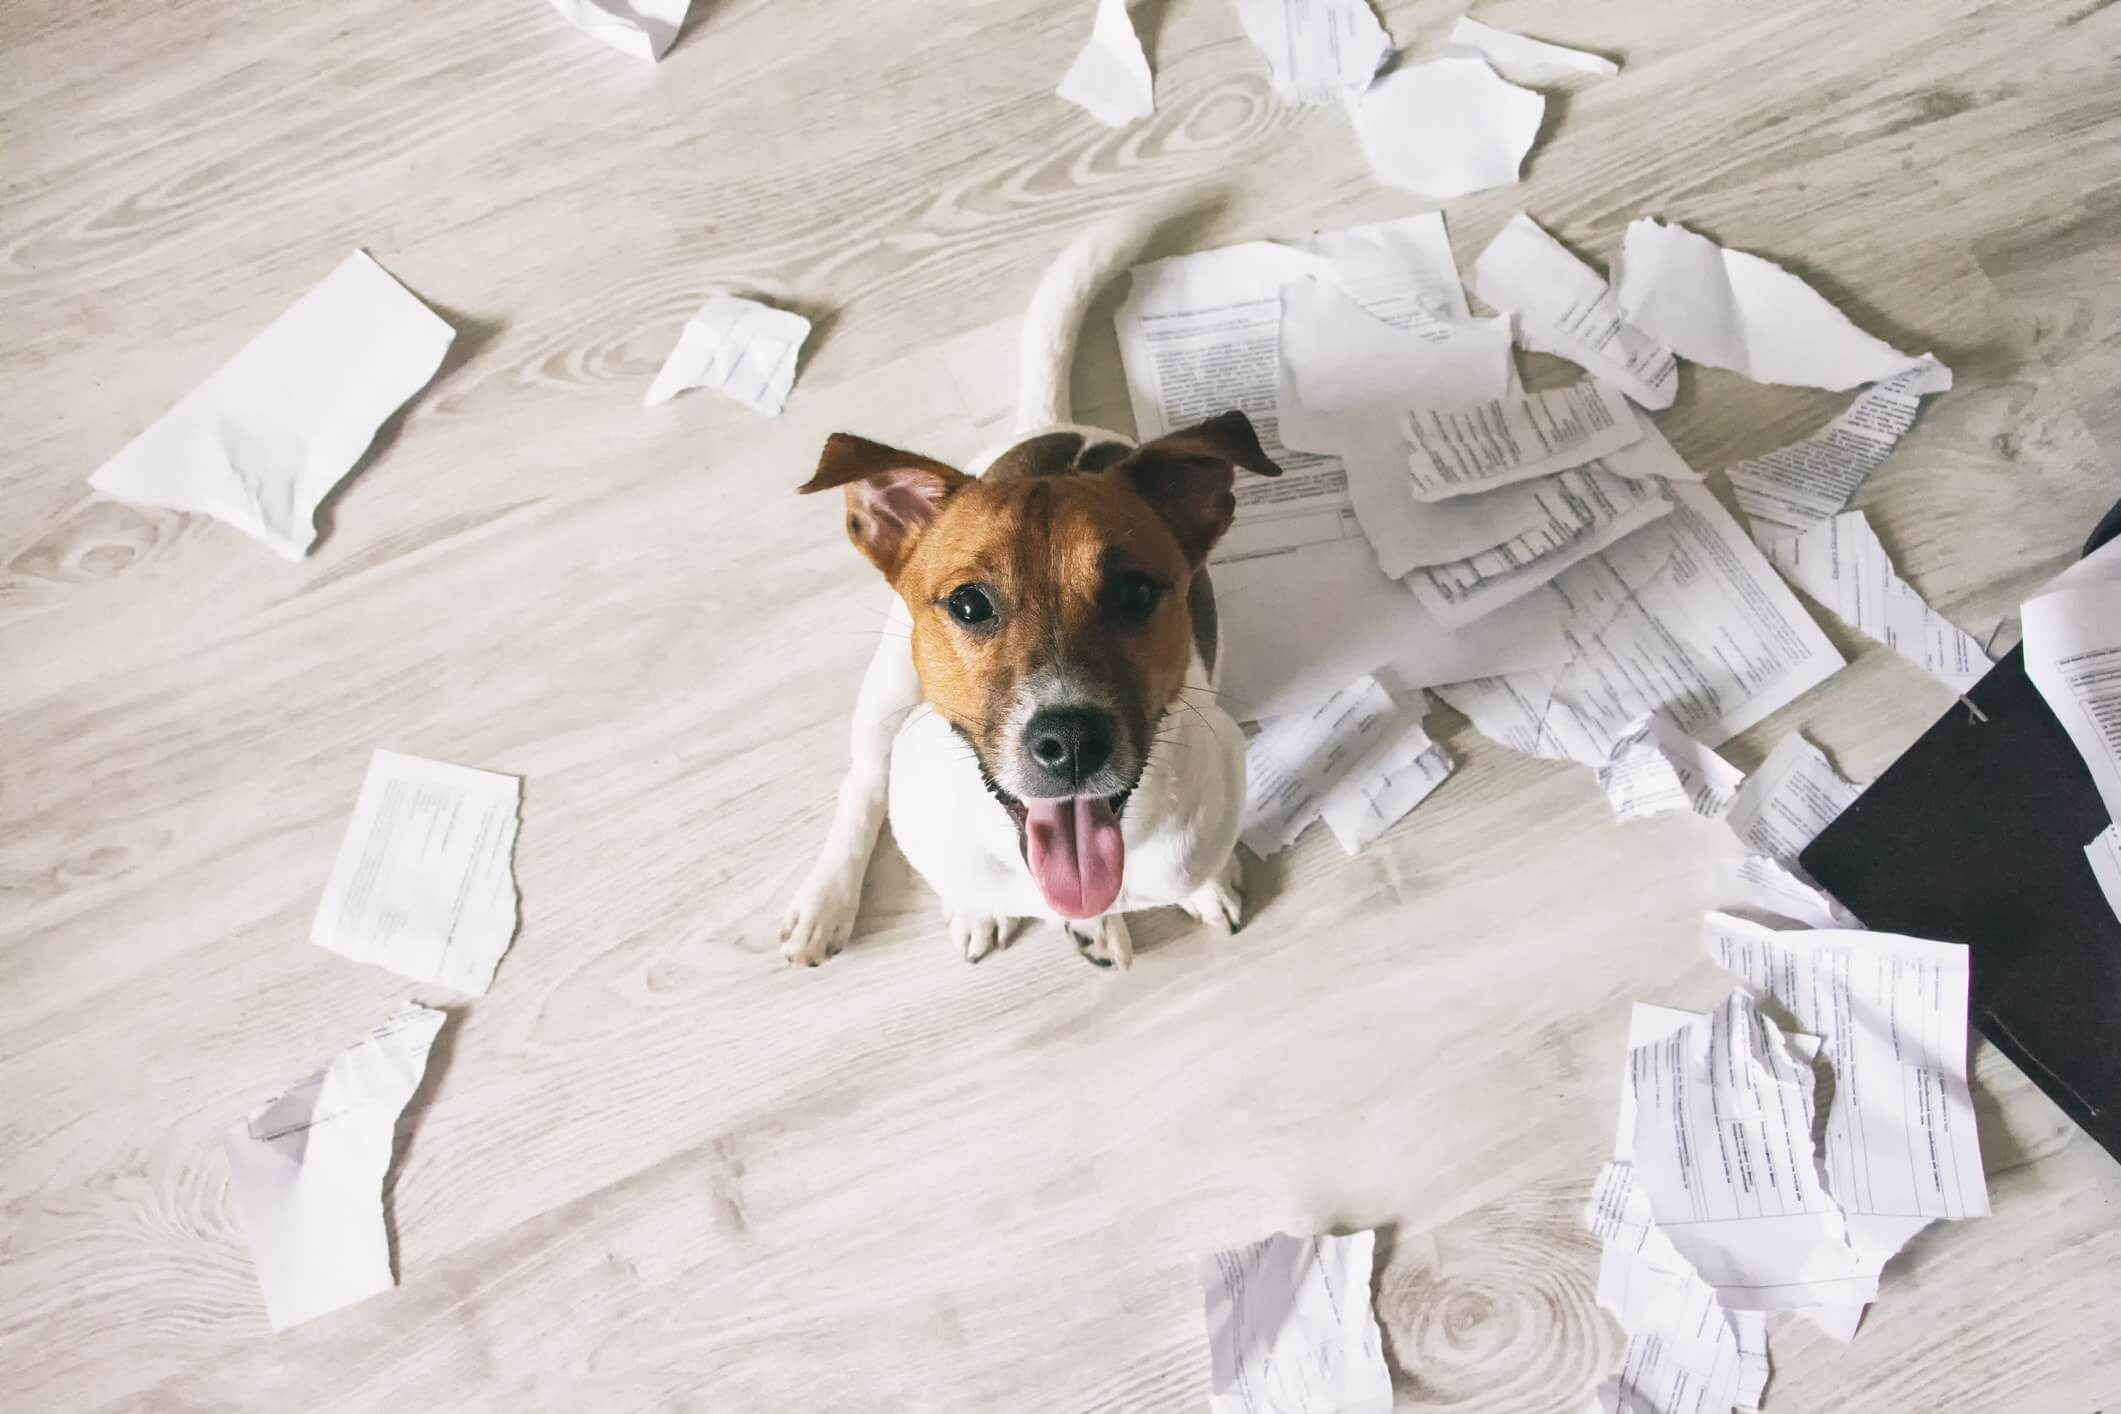 Dog chewed up paper